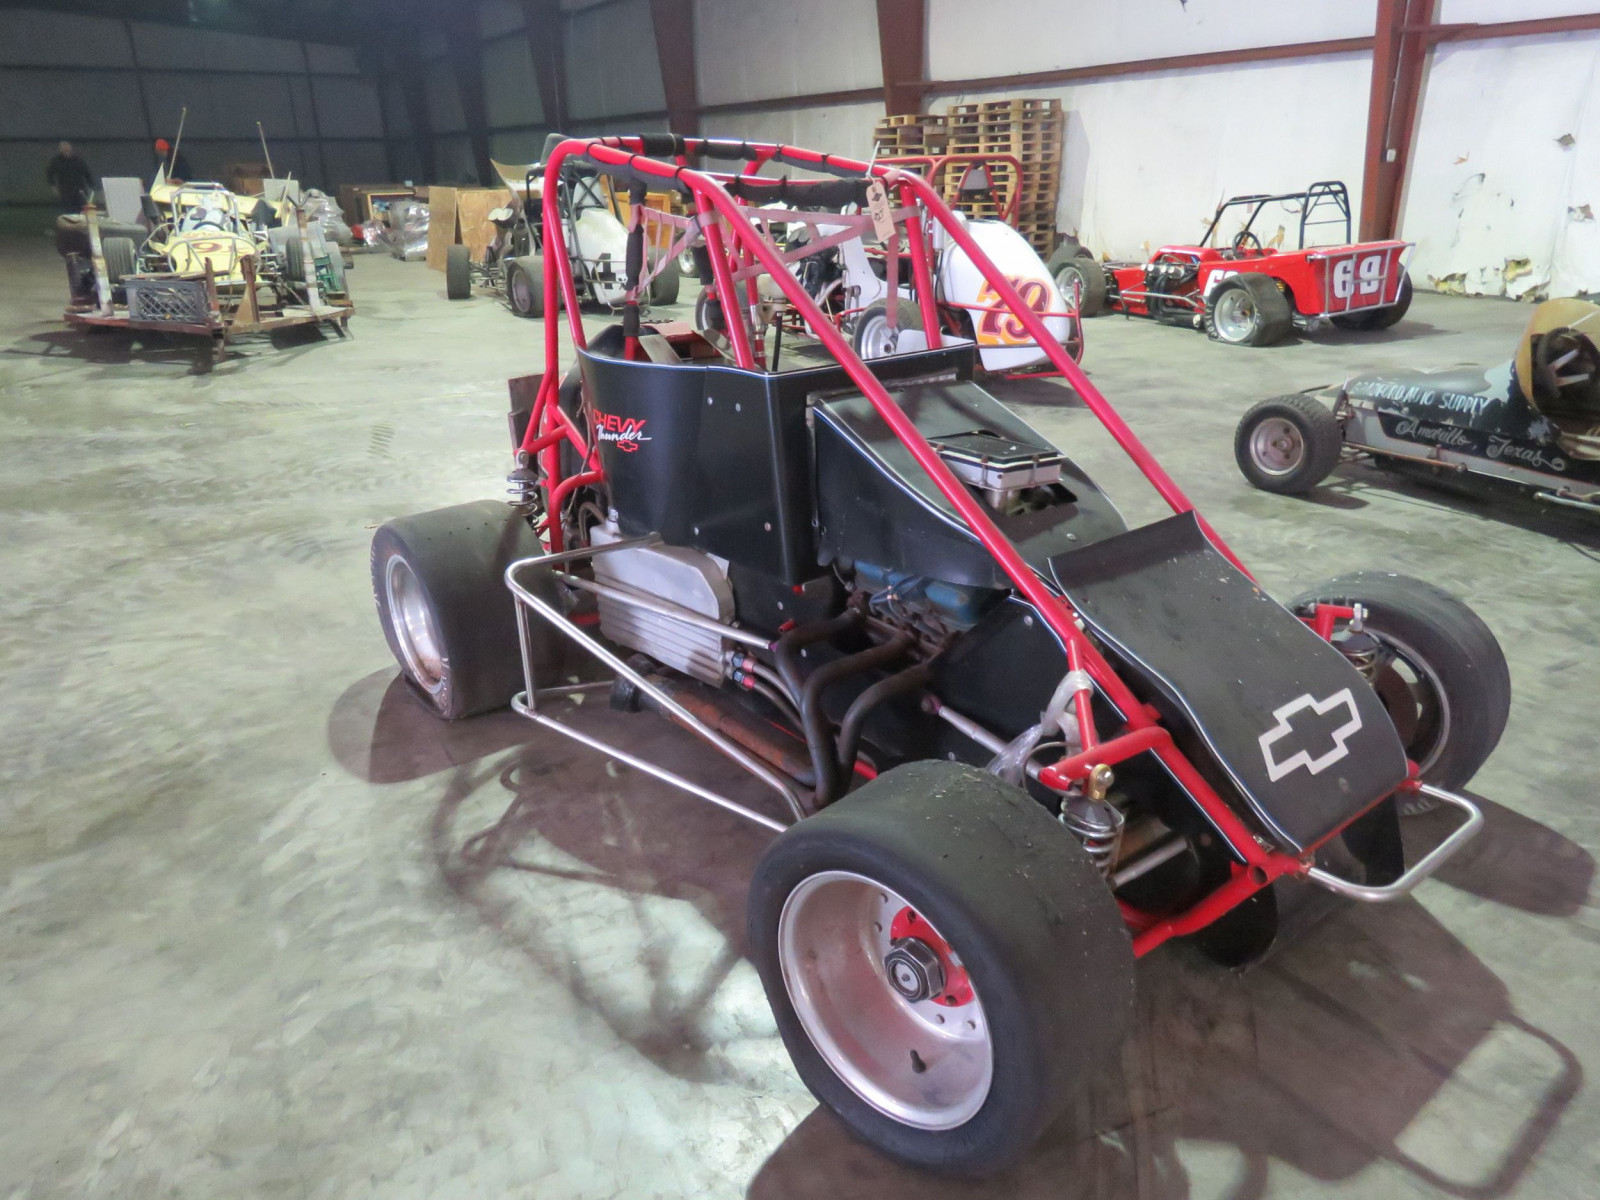 The Beast Vintage Midget Race Car - Image 3